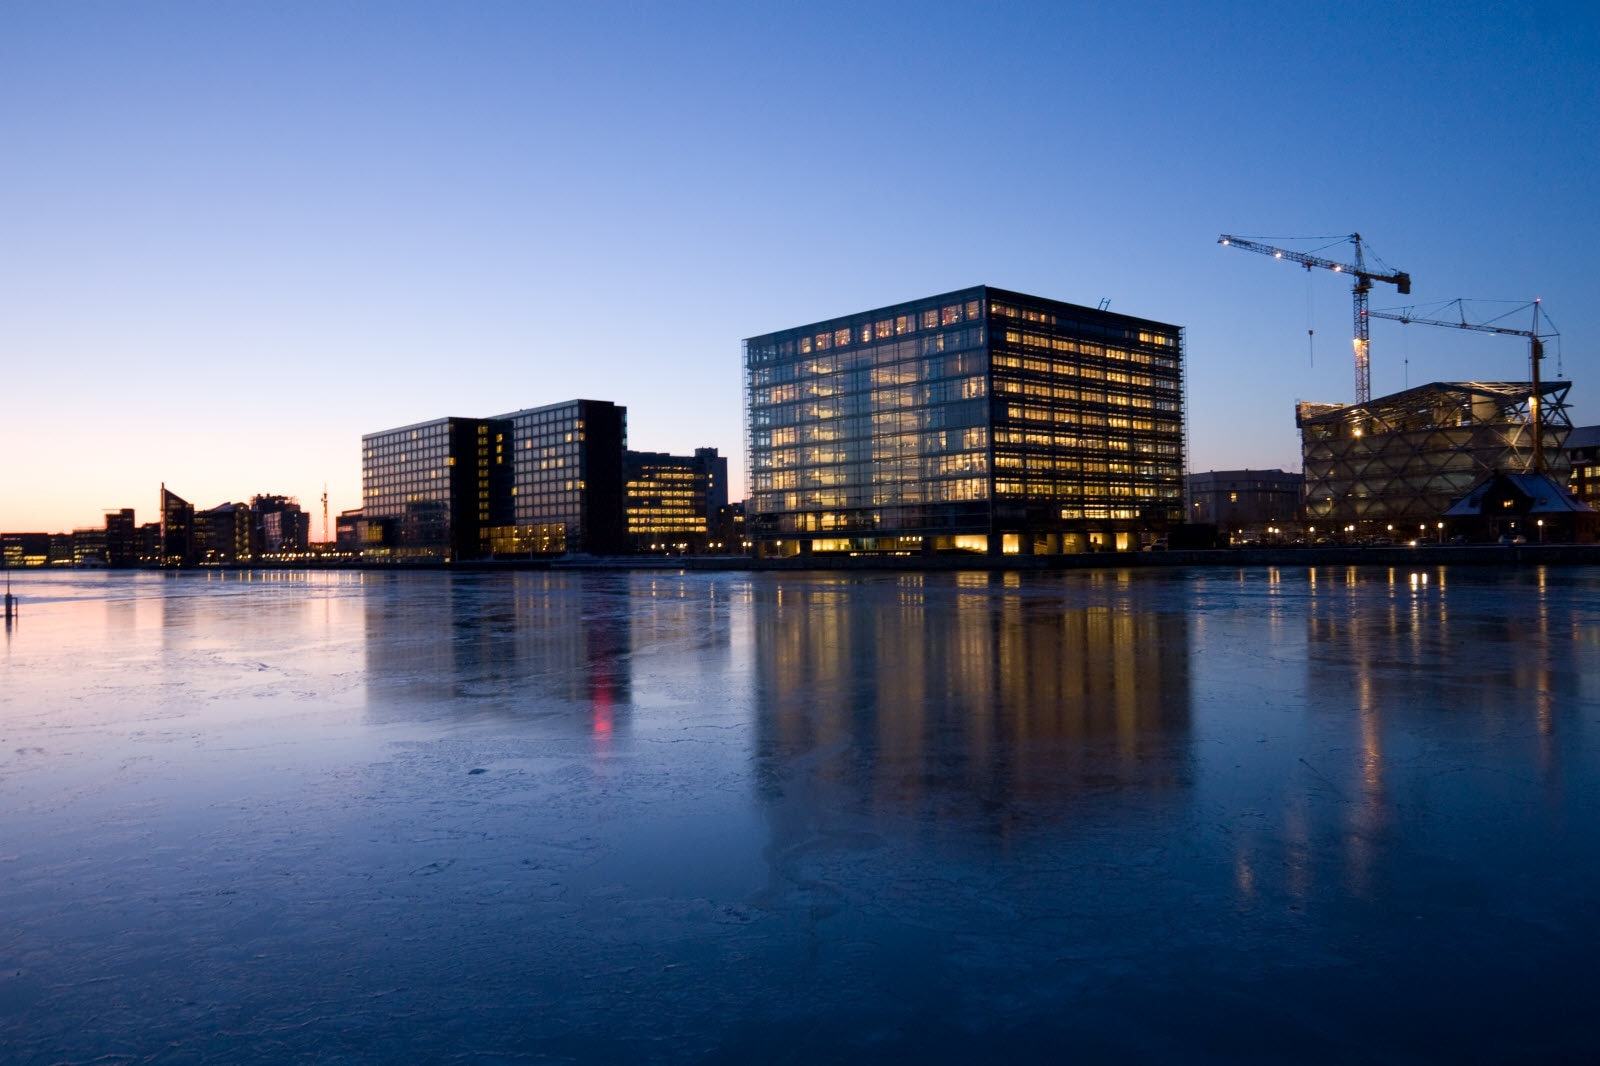 Icy waters in Copenhagen harbor at sundown on a cold winter day. The office buildings are still lit and a building is under construction on the far right.